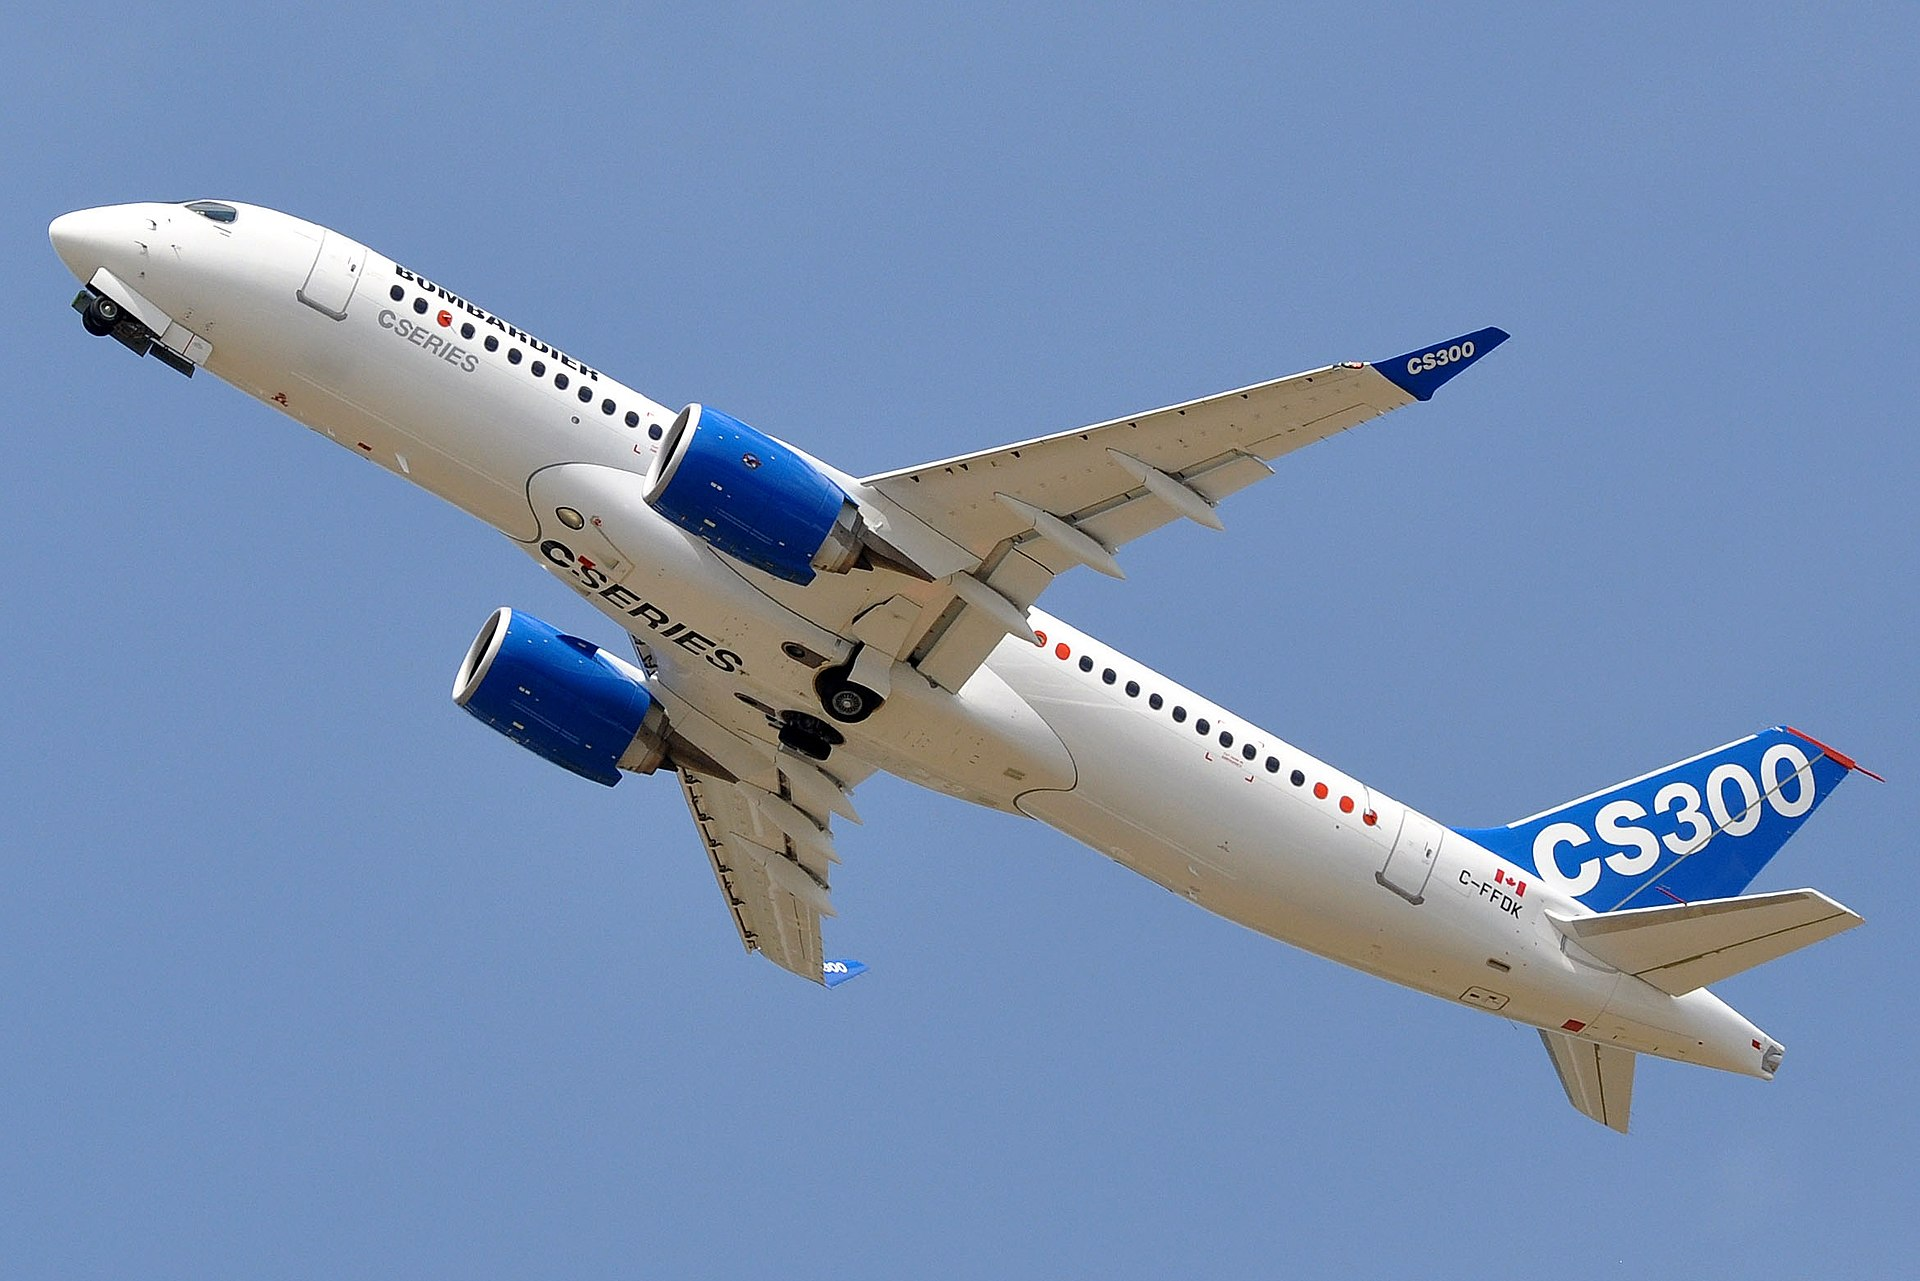 bombardier cseries The c series is the first product from bombardier to compete against boeing and airbus delta is the c series' most important customer.